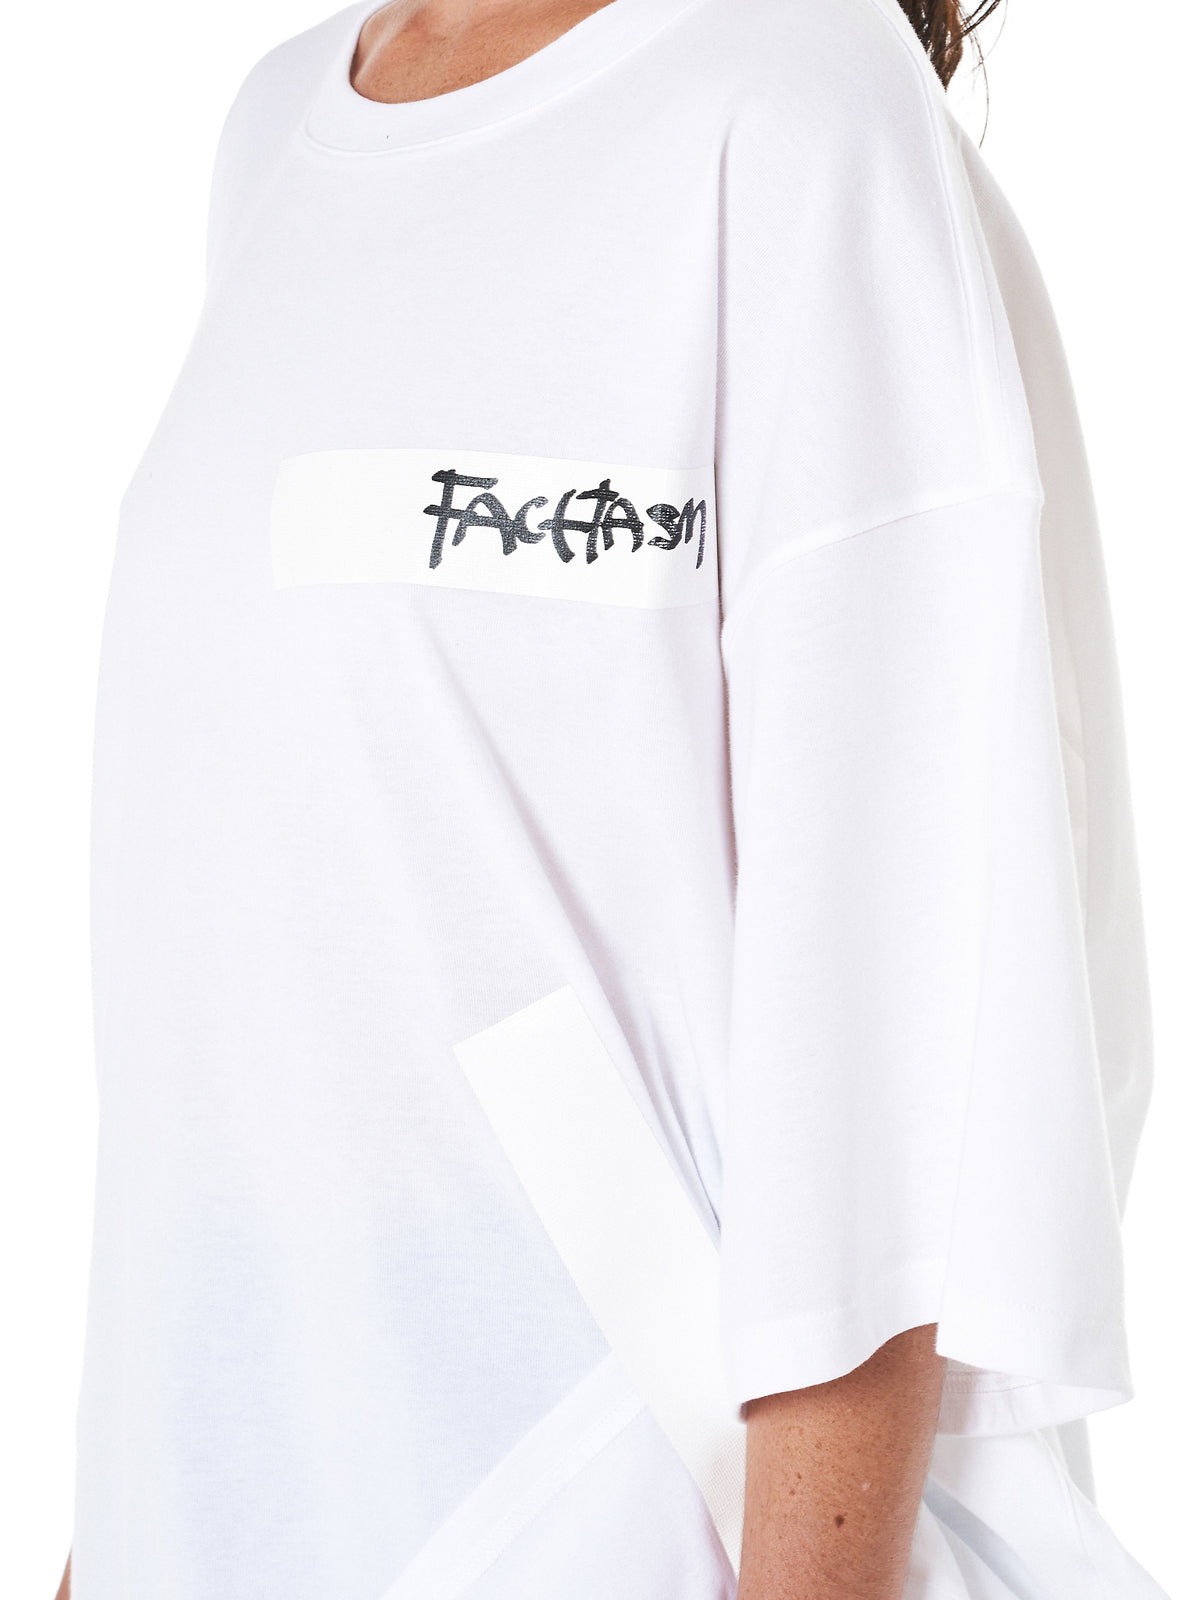 Taped Crewneck Tee (RBTEEU22-WHITE)